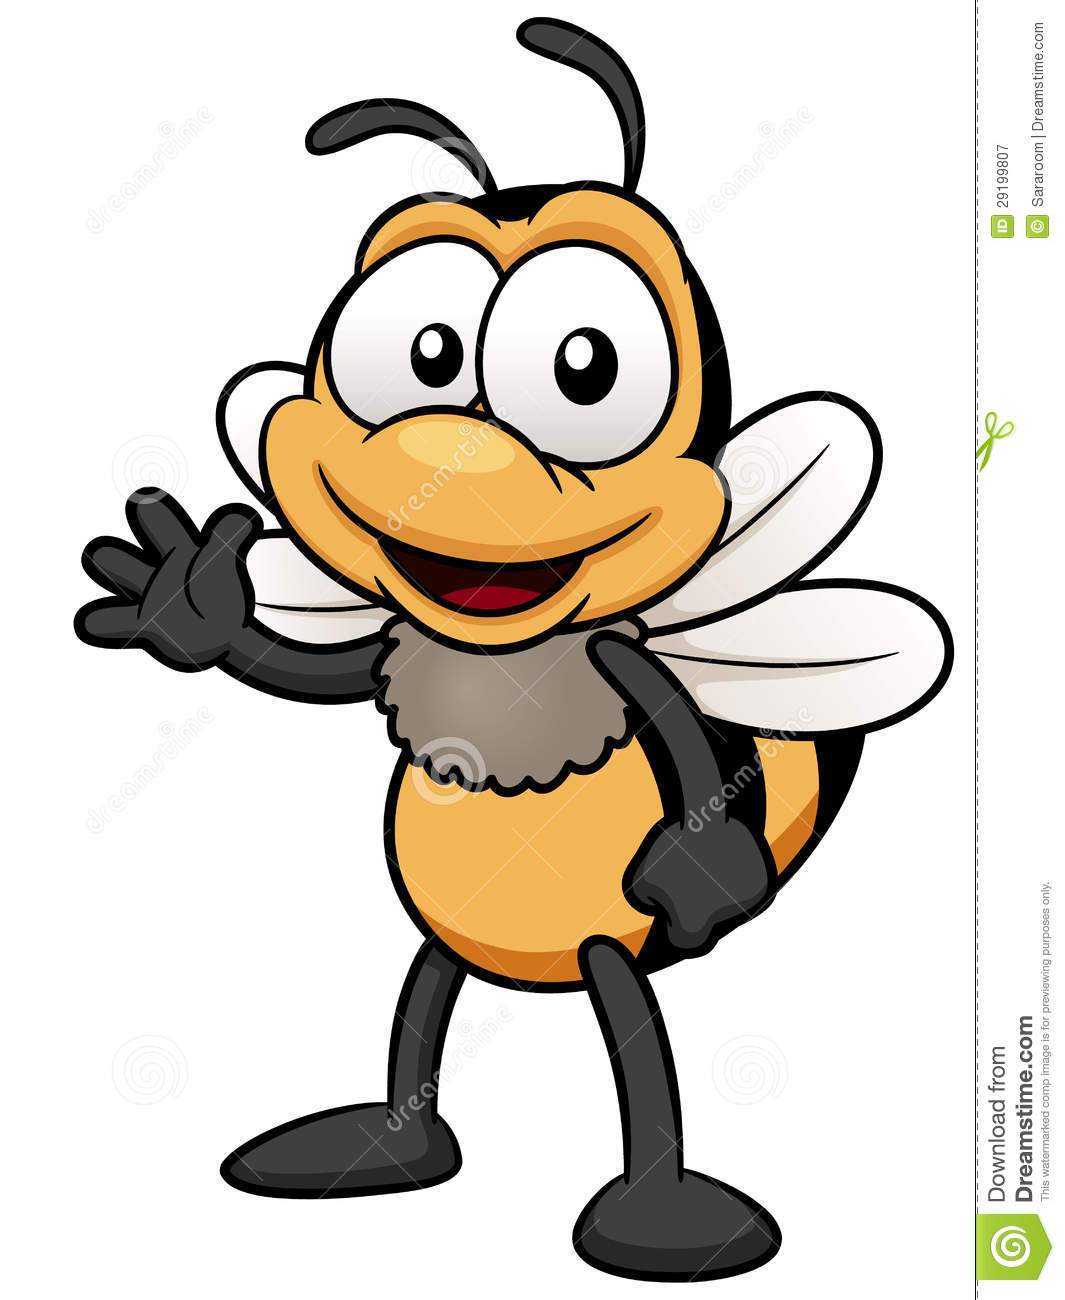 Cartoon Bee Royalty Free Stock Photography - Image: 29199807